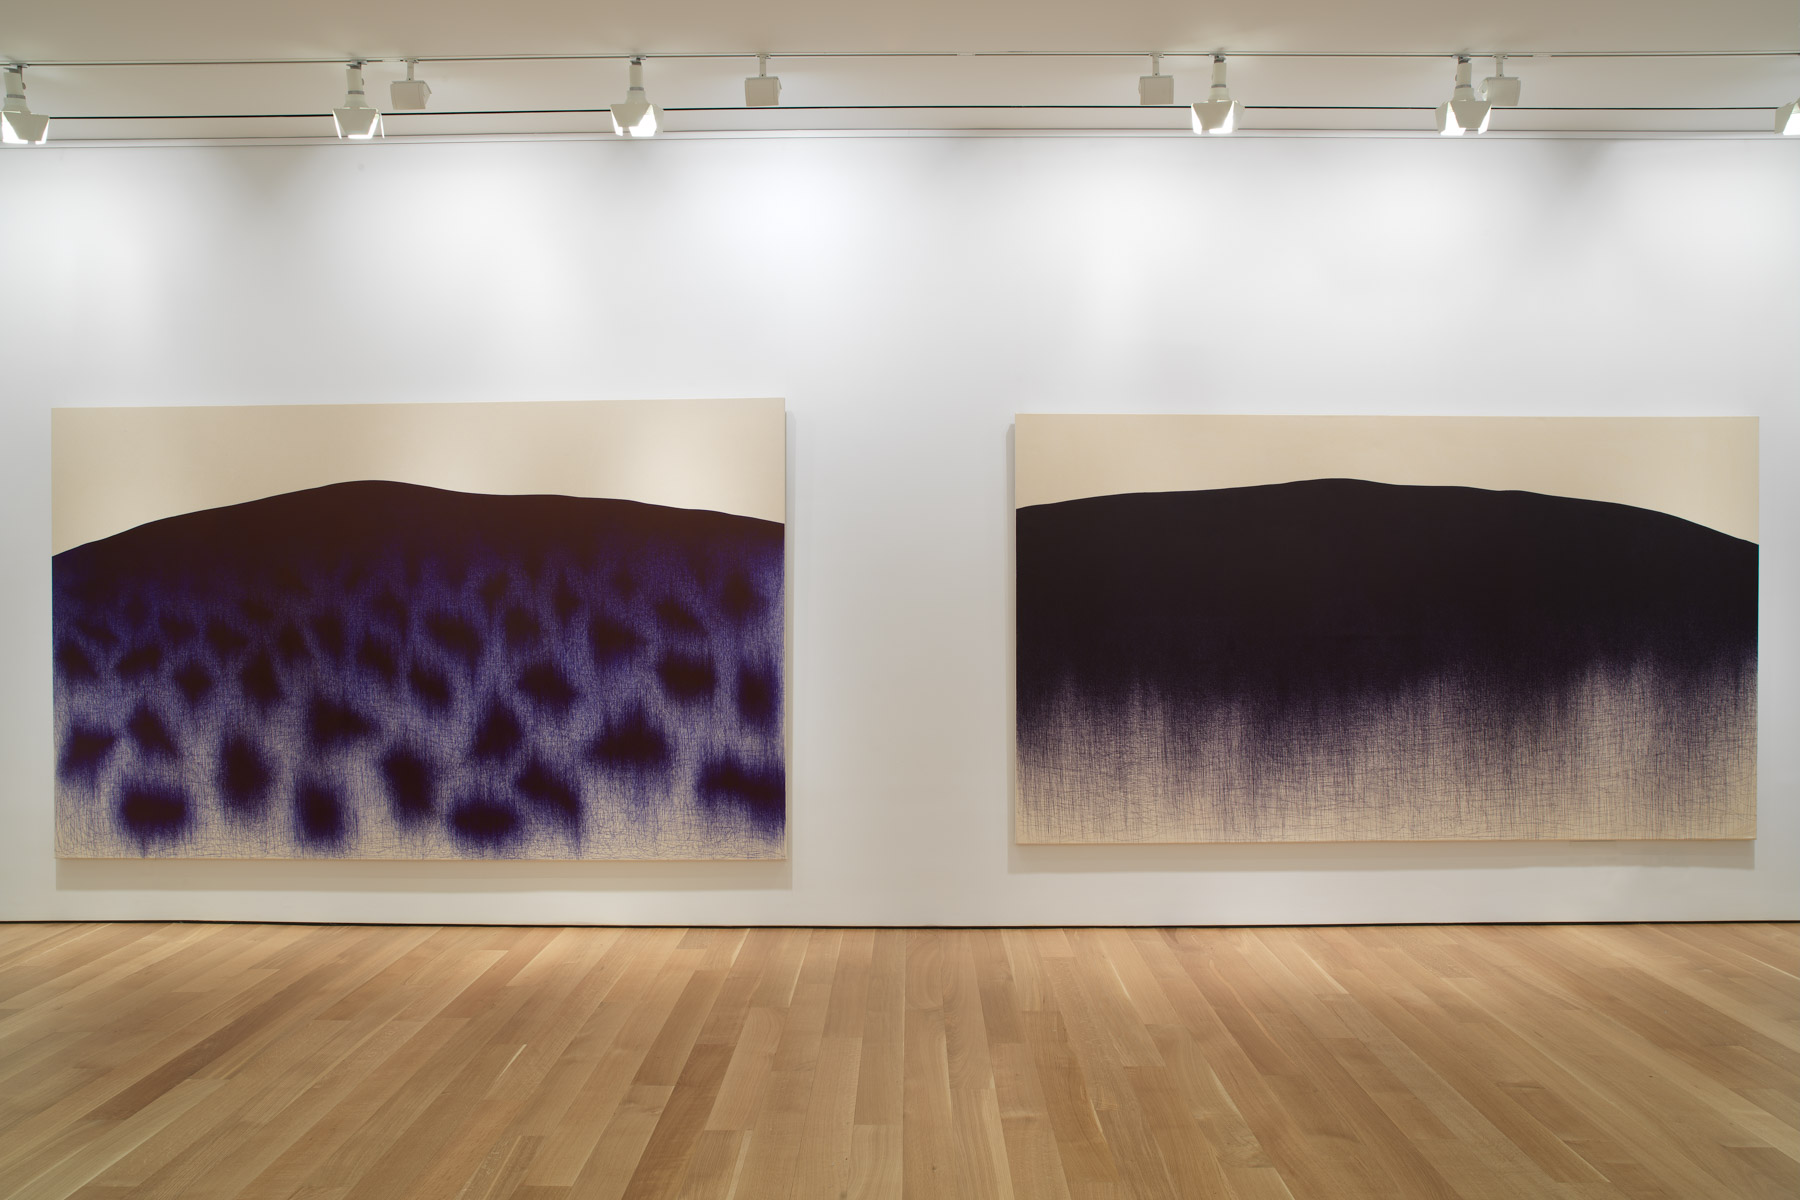 installation view of two works by Il Lee